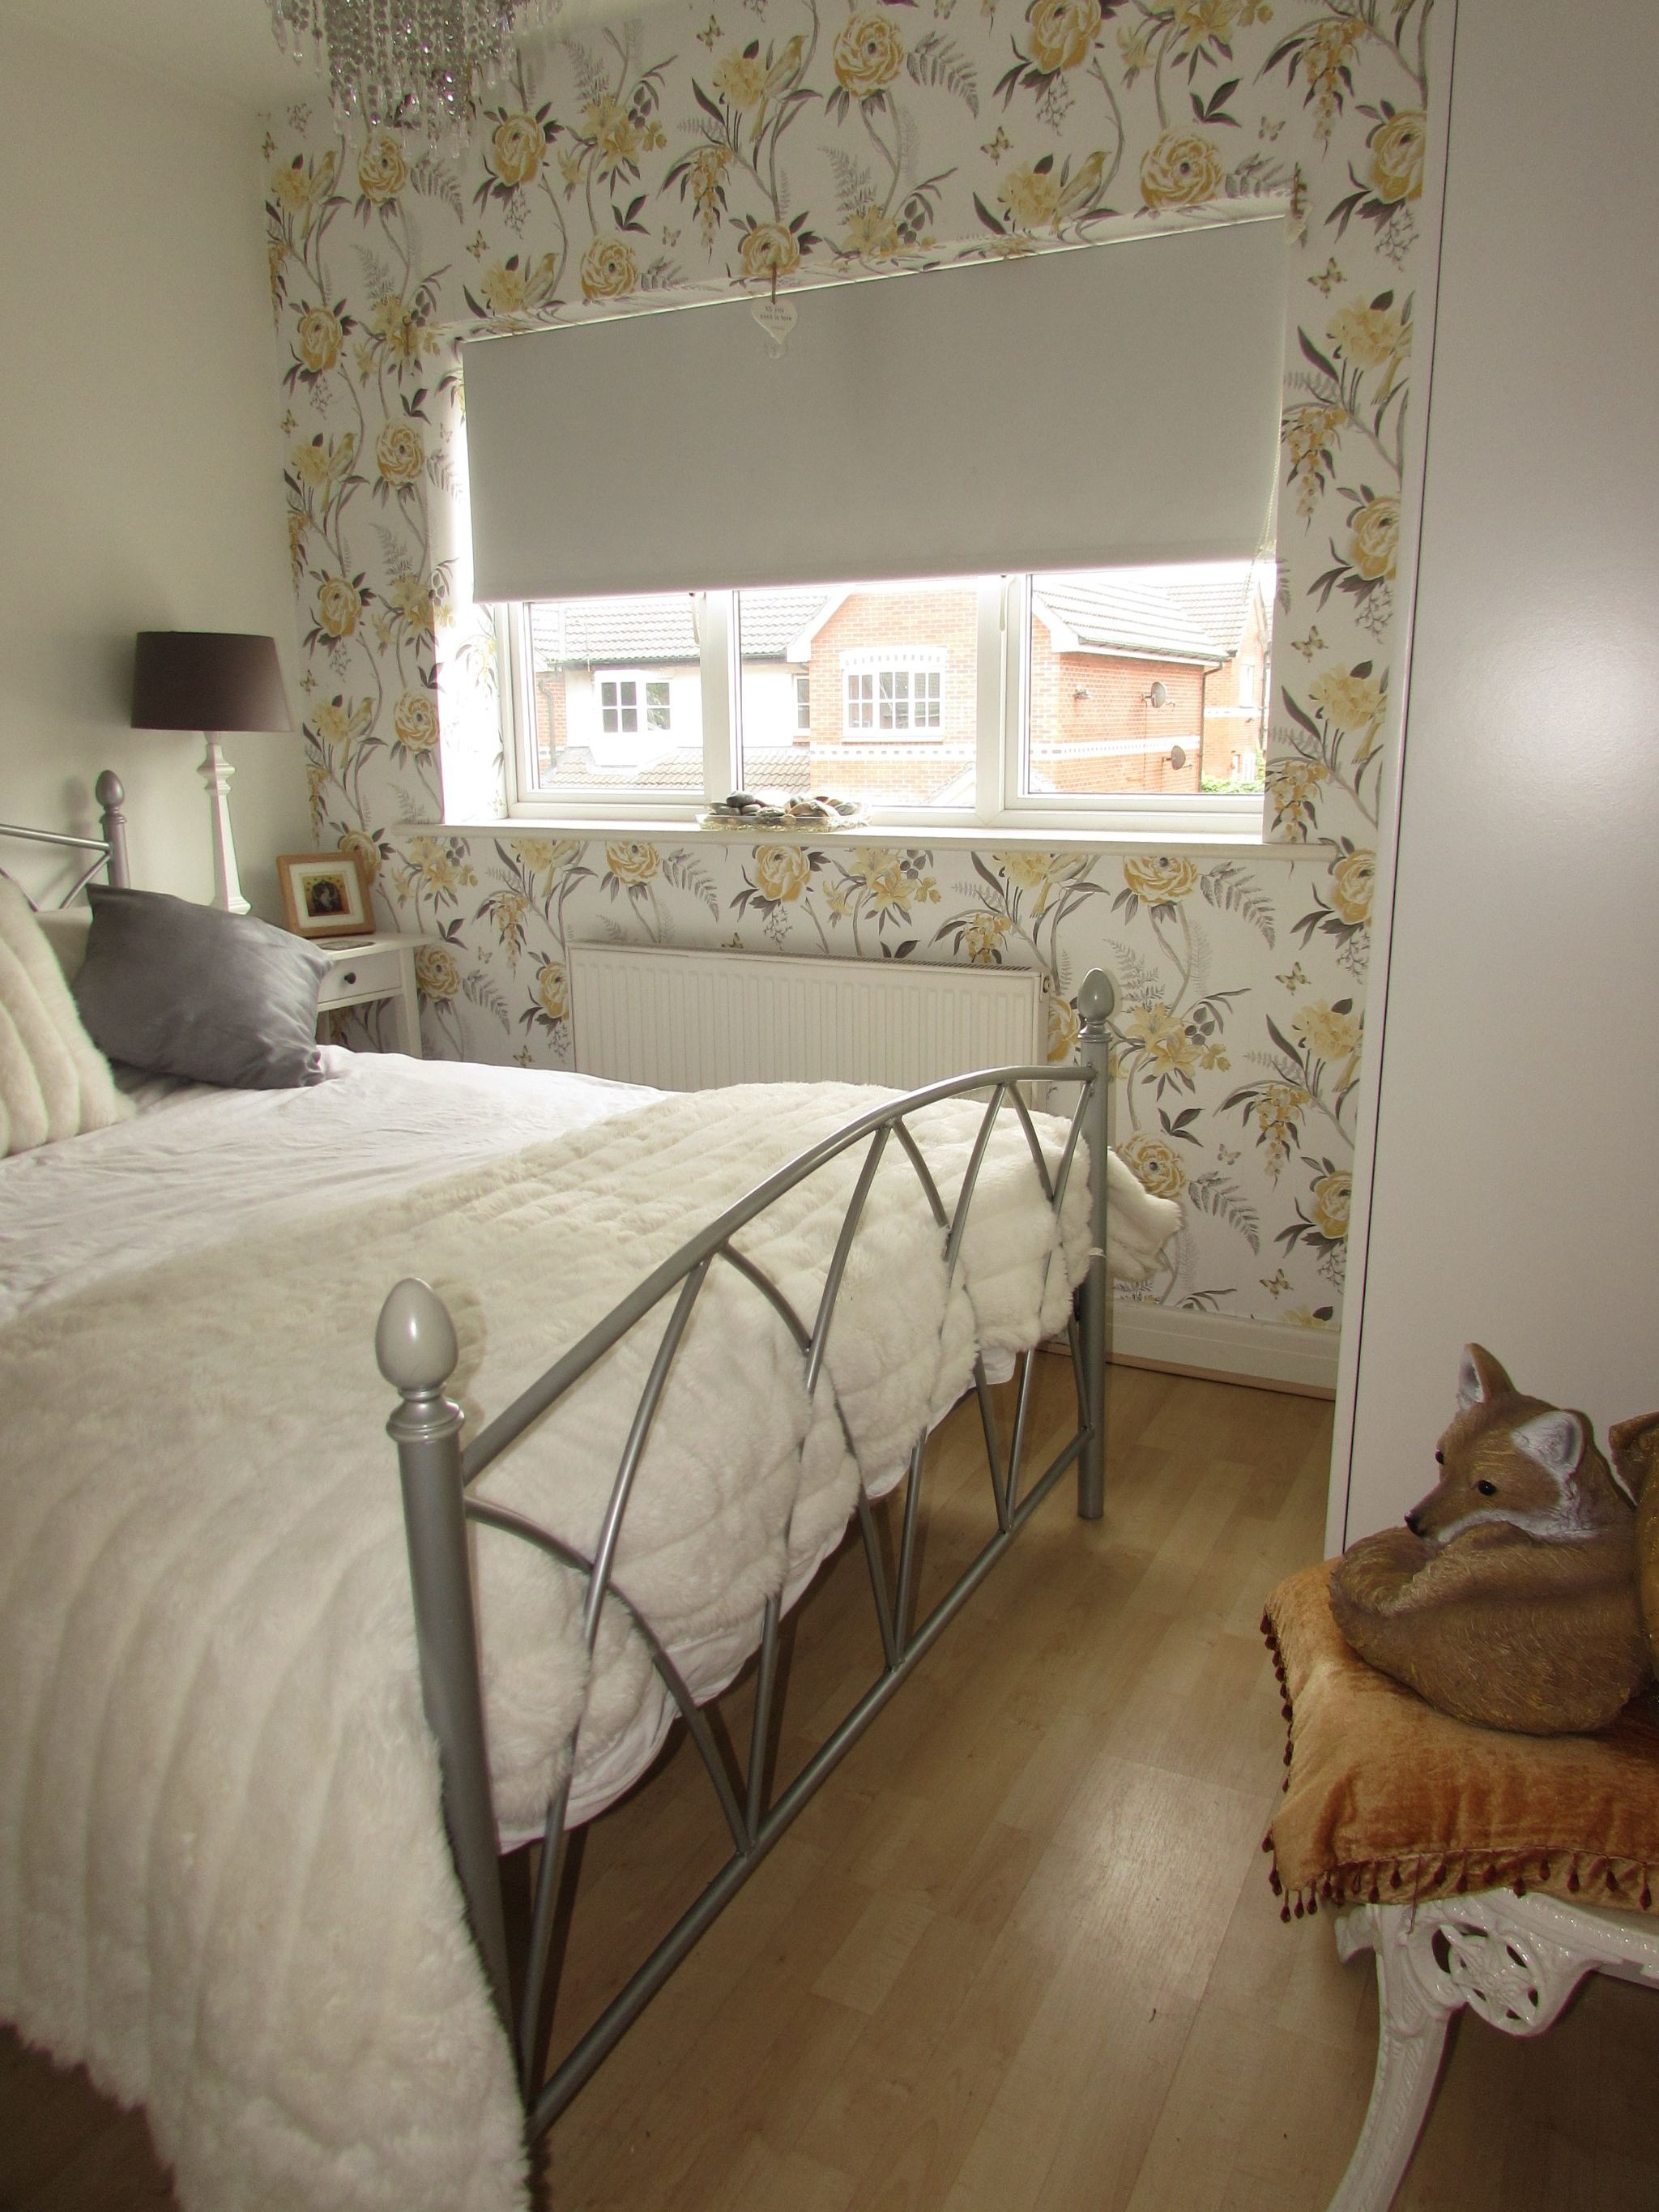 3 Bedroom Semi-detached House For Sale - Photograph 25